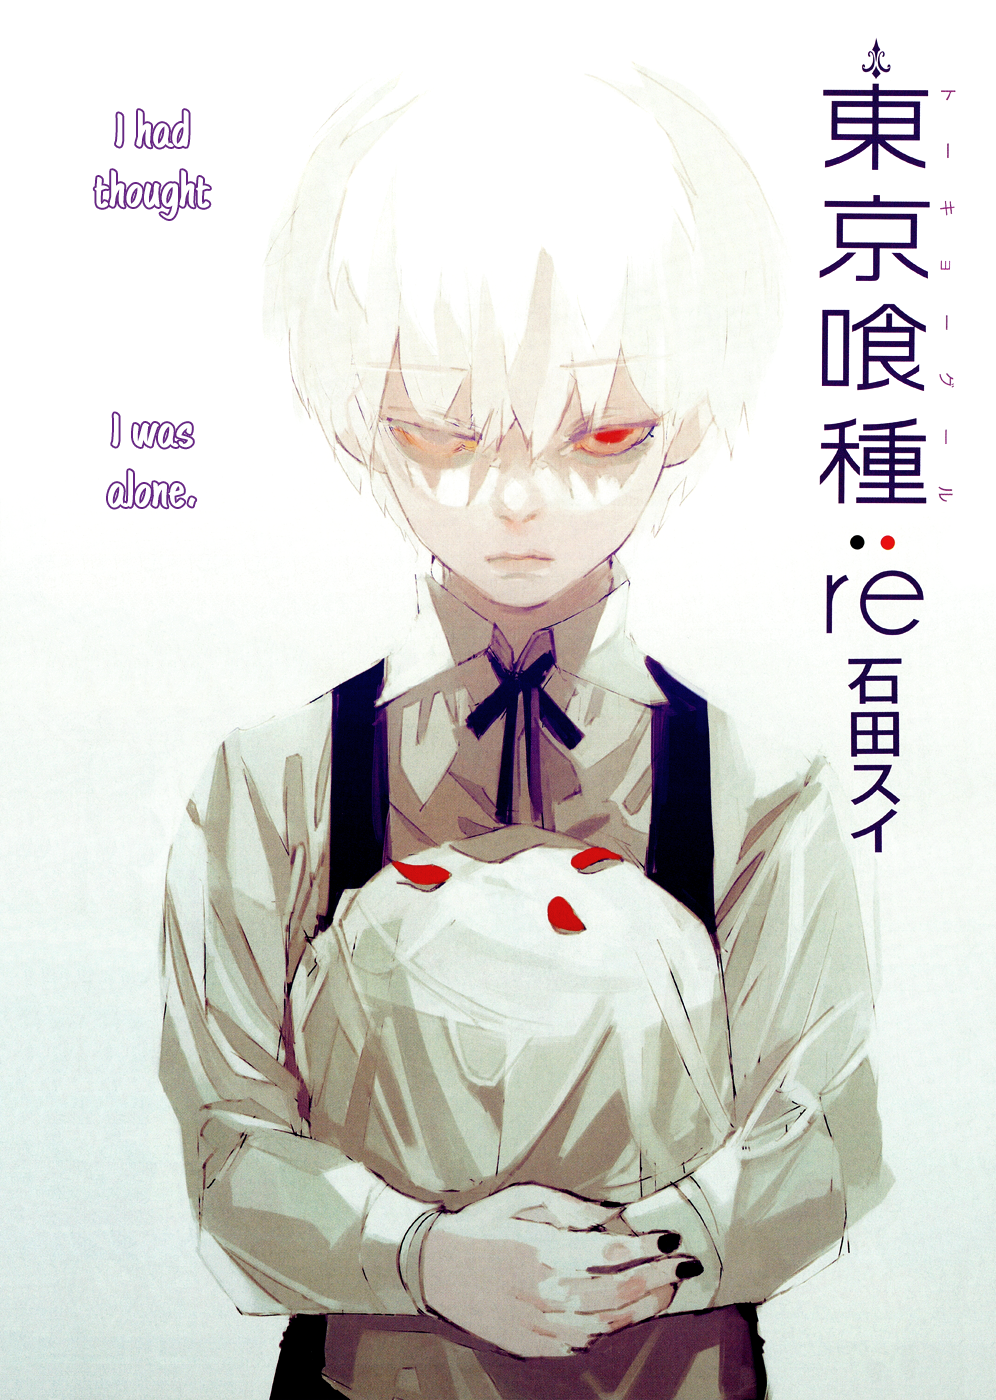 Tokyo Ghoulre Chapter 31.5  Online Free Manga Read Image 6